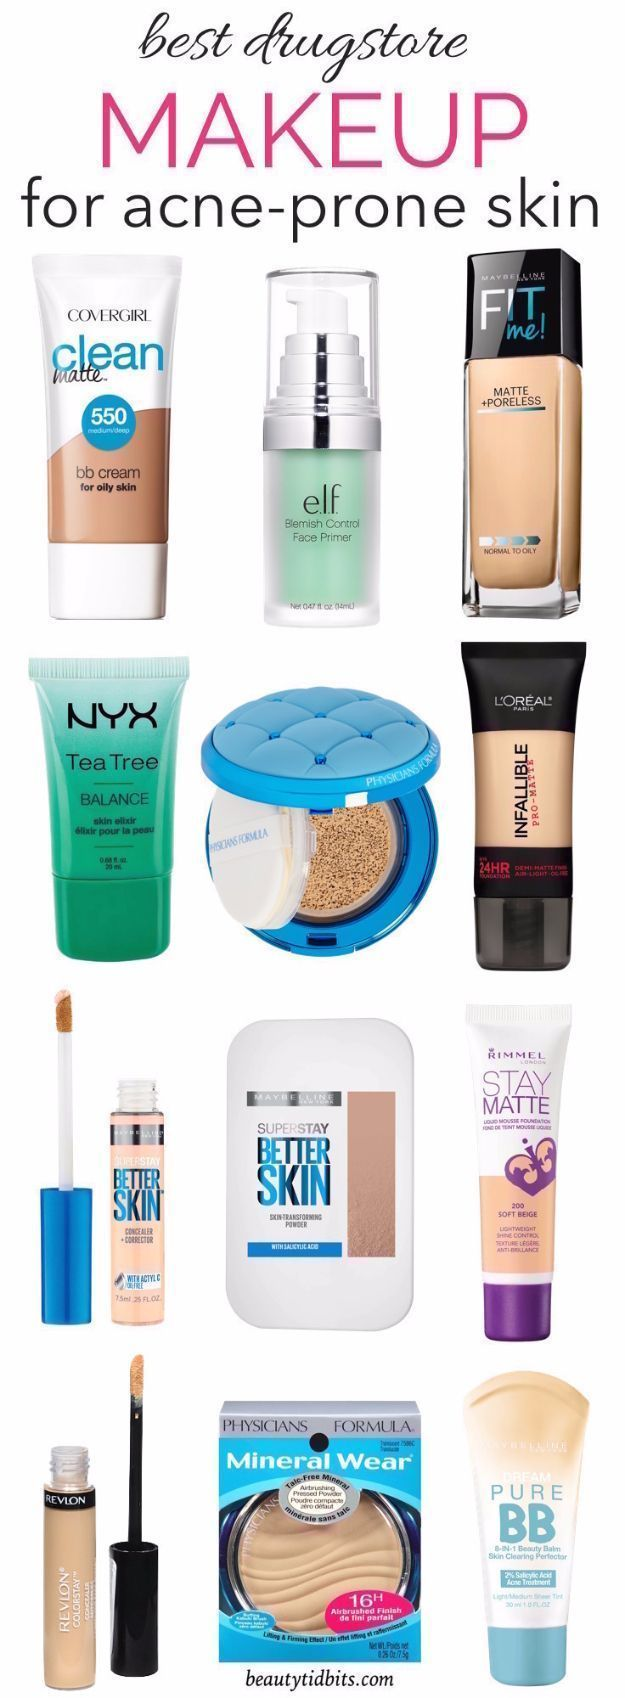 Best Drugstore Makeup Dupes- Best Drugstore Makeup For Acne-Prone Skin - Simple DIY Tutorials That Cover The Best Drugstore Dupes And Products For Foundation, Contouring, Lipsticks, Eye Concealer, Products For Oily Skin, Dupe Brushes, and Primers From 2016 And Places Like Target. These Are Cheap And Affordable - http://thegoddess.com/best-drugstore-makeup-dupes #acneandmakeup,